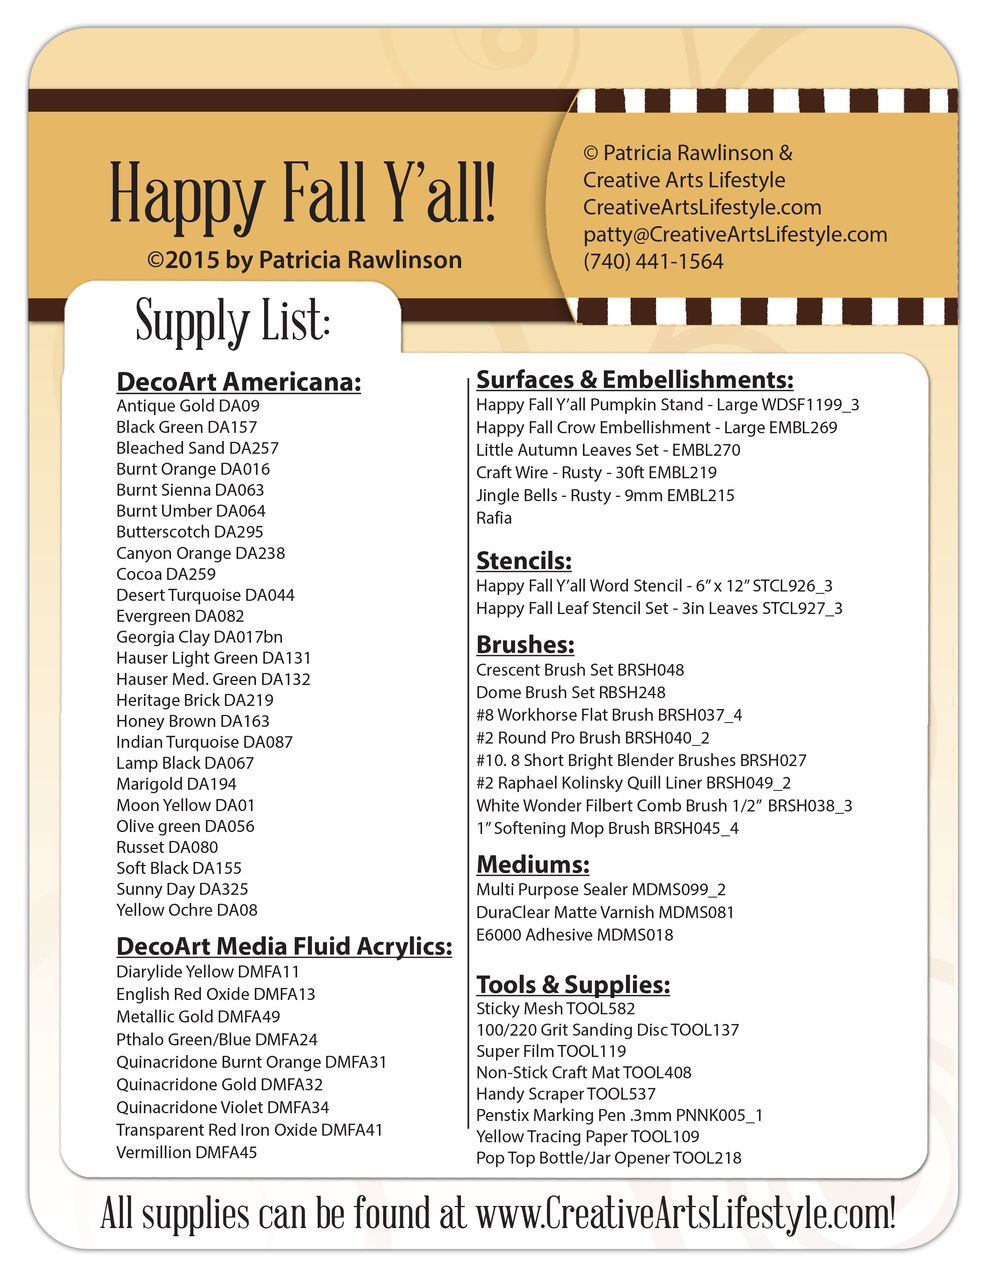 Happy Fall Y'all! Pattern Packet - Patricia Rawlinson